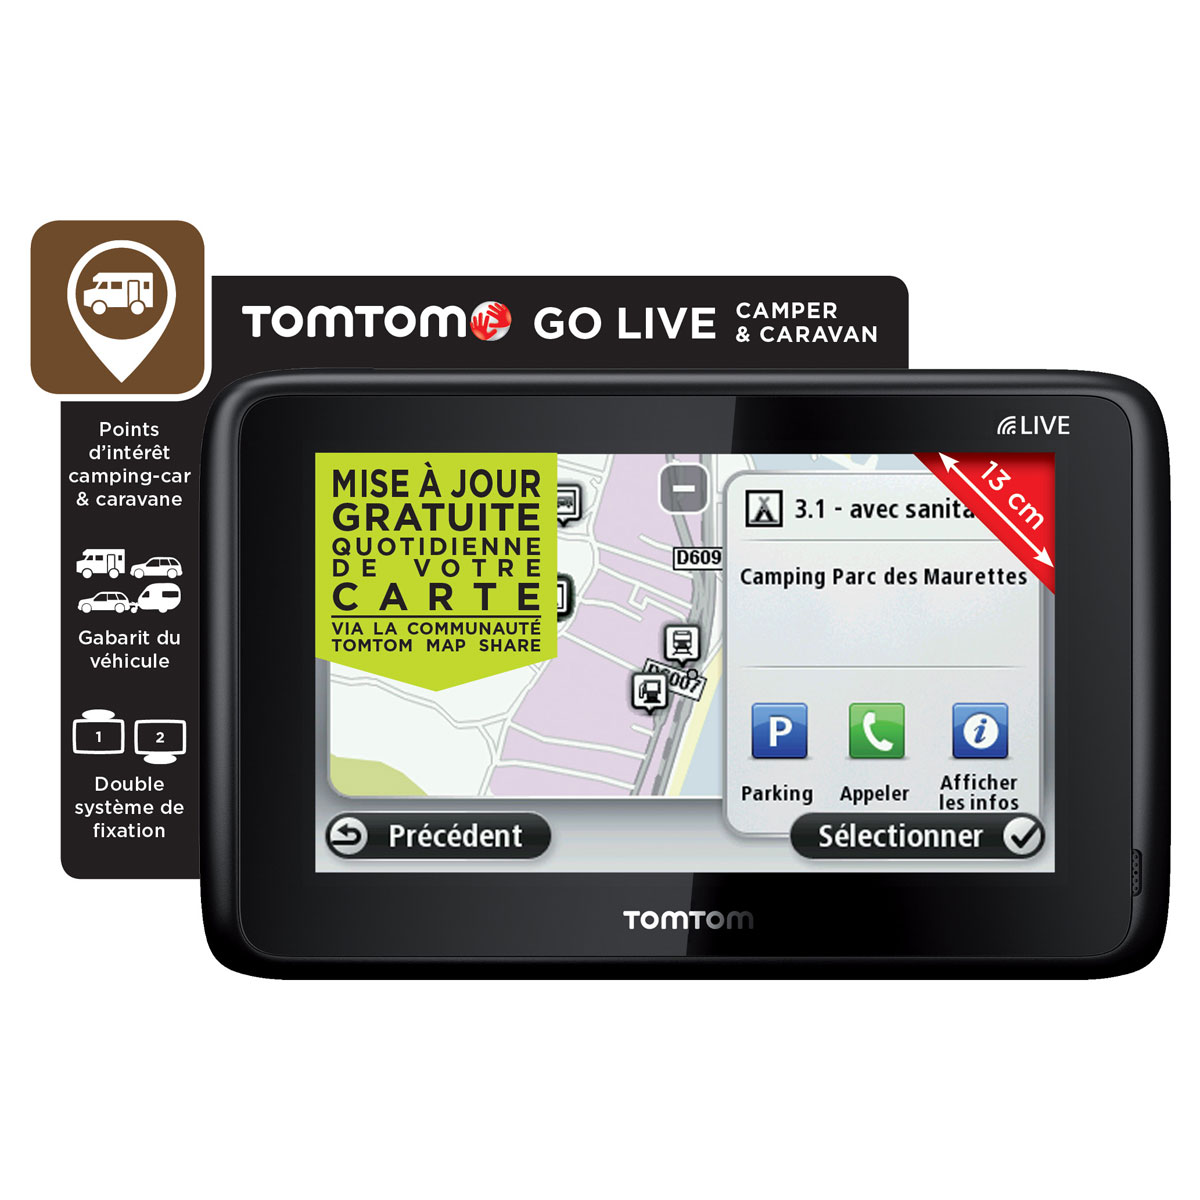 tomtom go live camper caravan gps tomtom sur. Black Bedroom Furniture Sets. Home Design Ideas